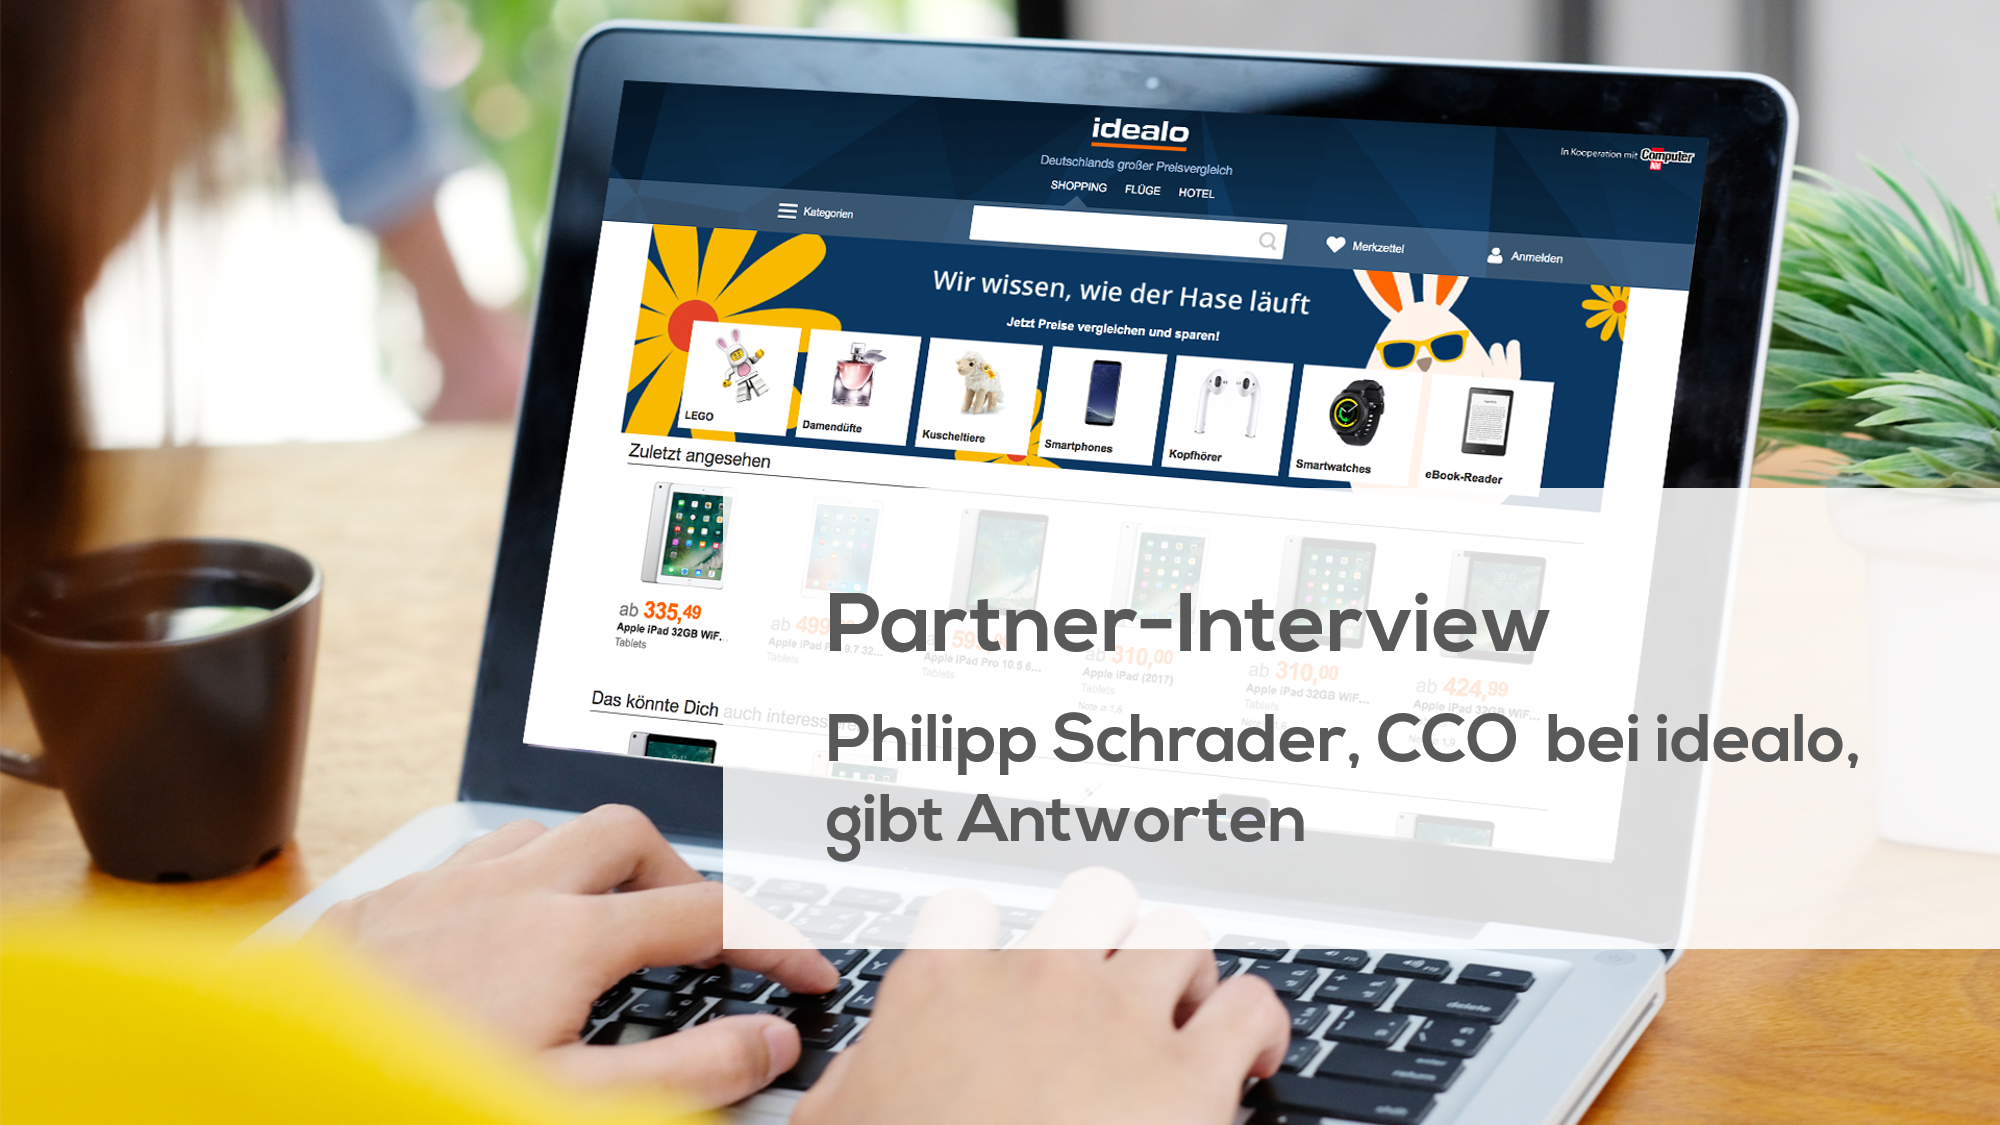 Partner-Interview mit idealo